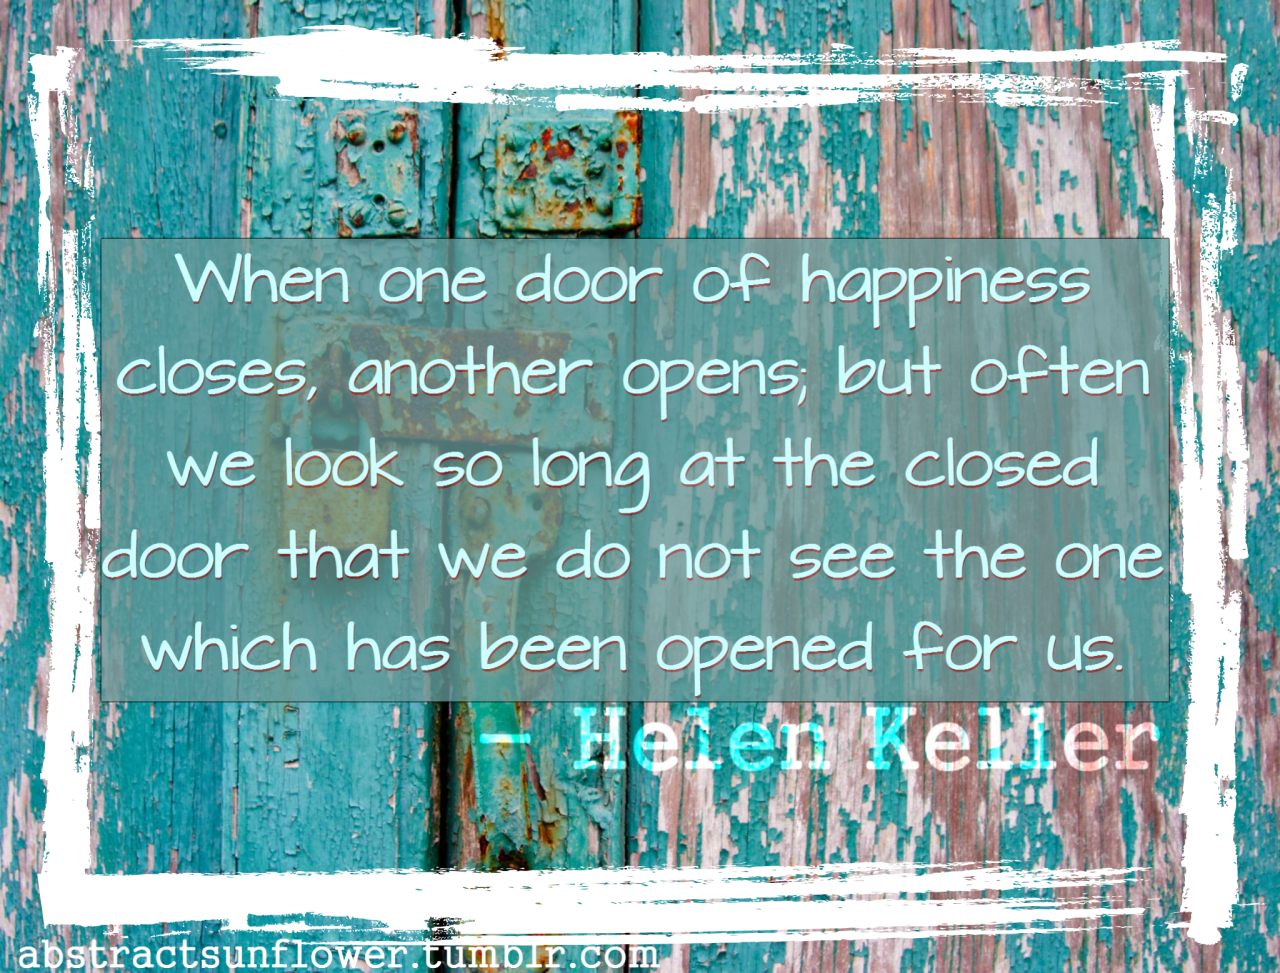 """when one door of happiness closes essay Helen keller biography helen keller (1880-1968) was an american author, political activist and campaigner for deaf and blind charities  """"when one door of happiness closes, another opens but often we look so long at the closed door that we do not see the one which has been opened for us""""."""